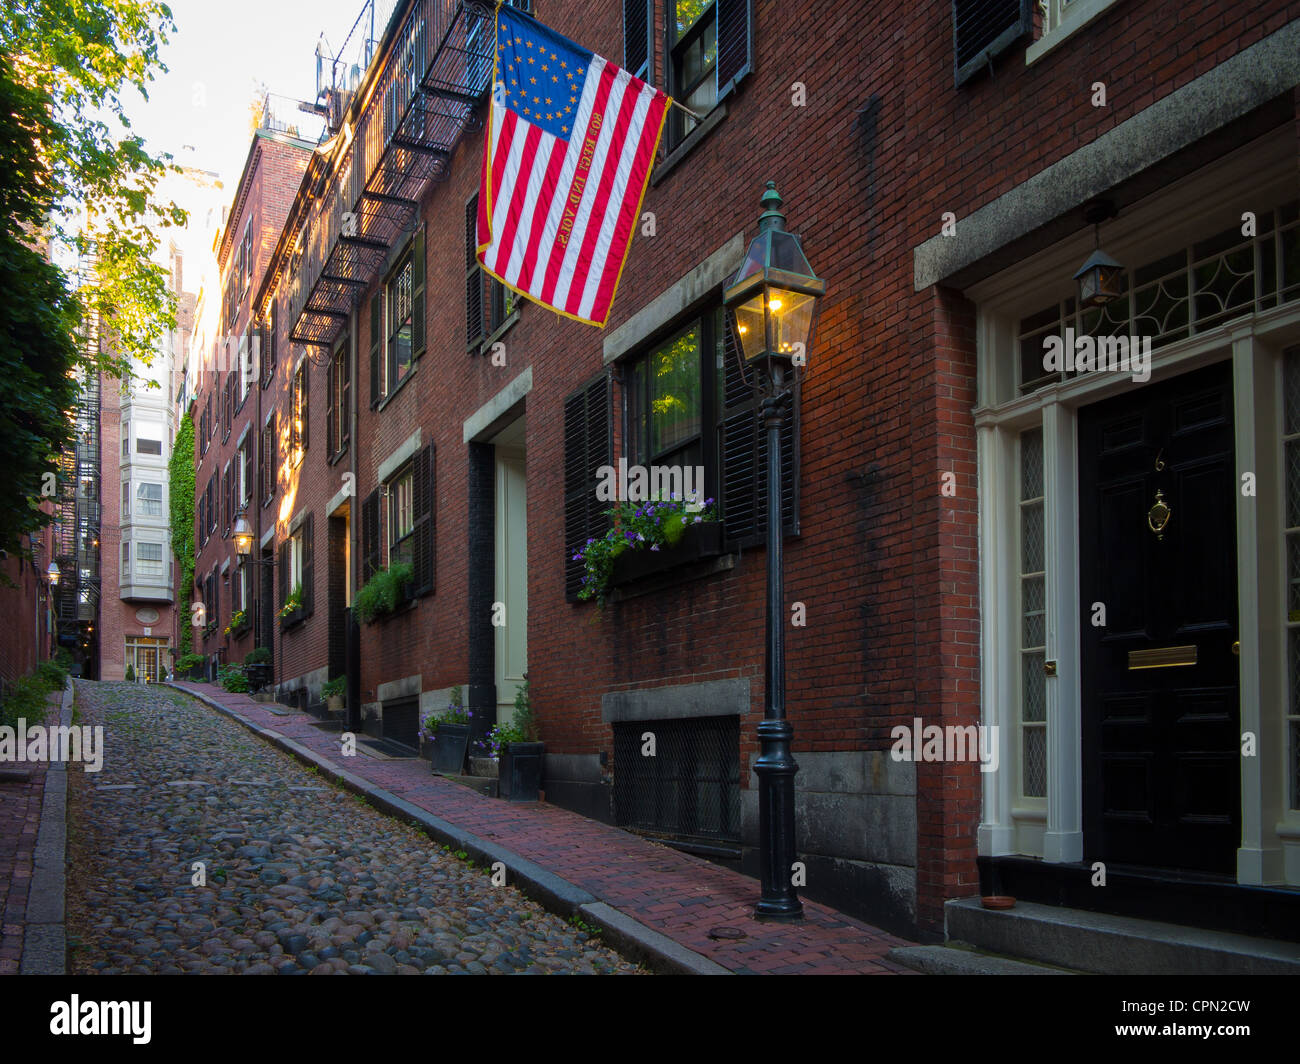 Acorn Street in Boston's Beacon Hill historic neighborhood - Stock Image